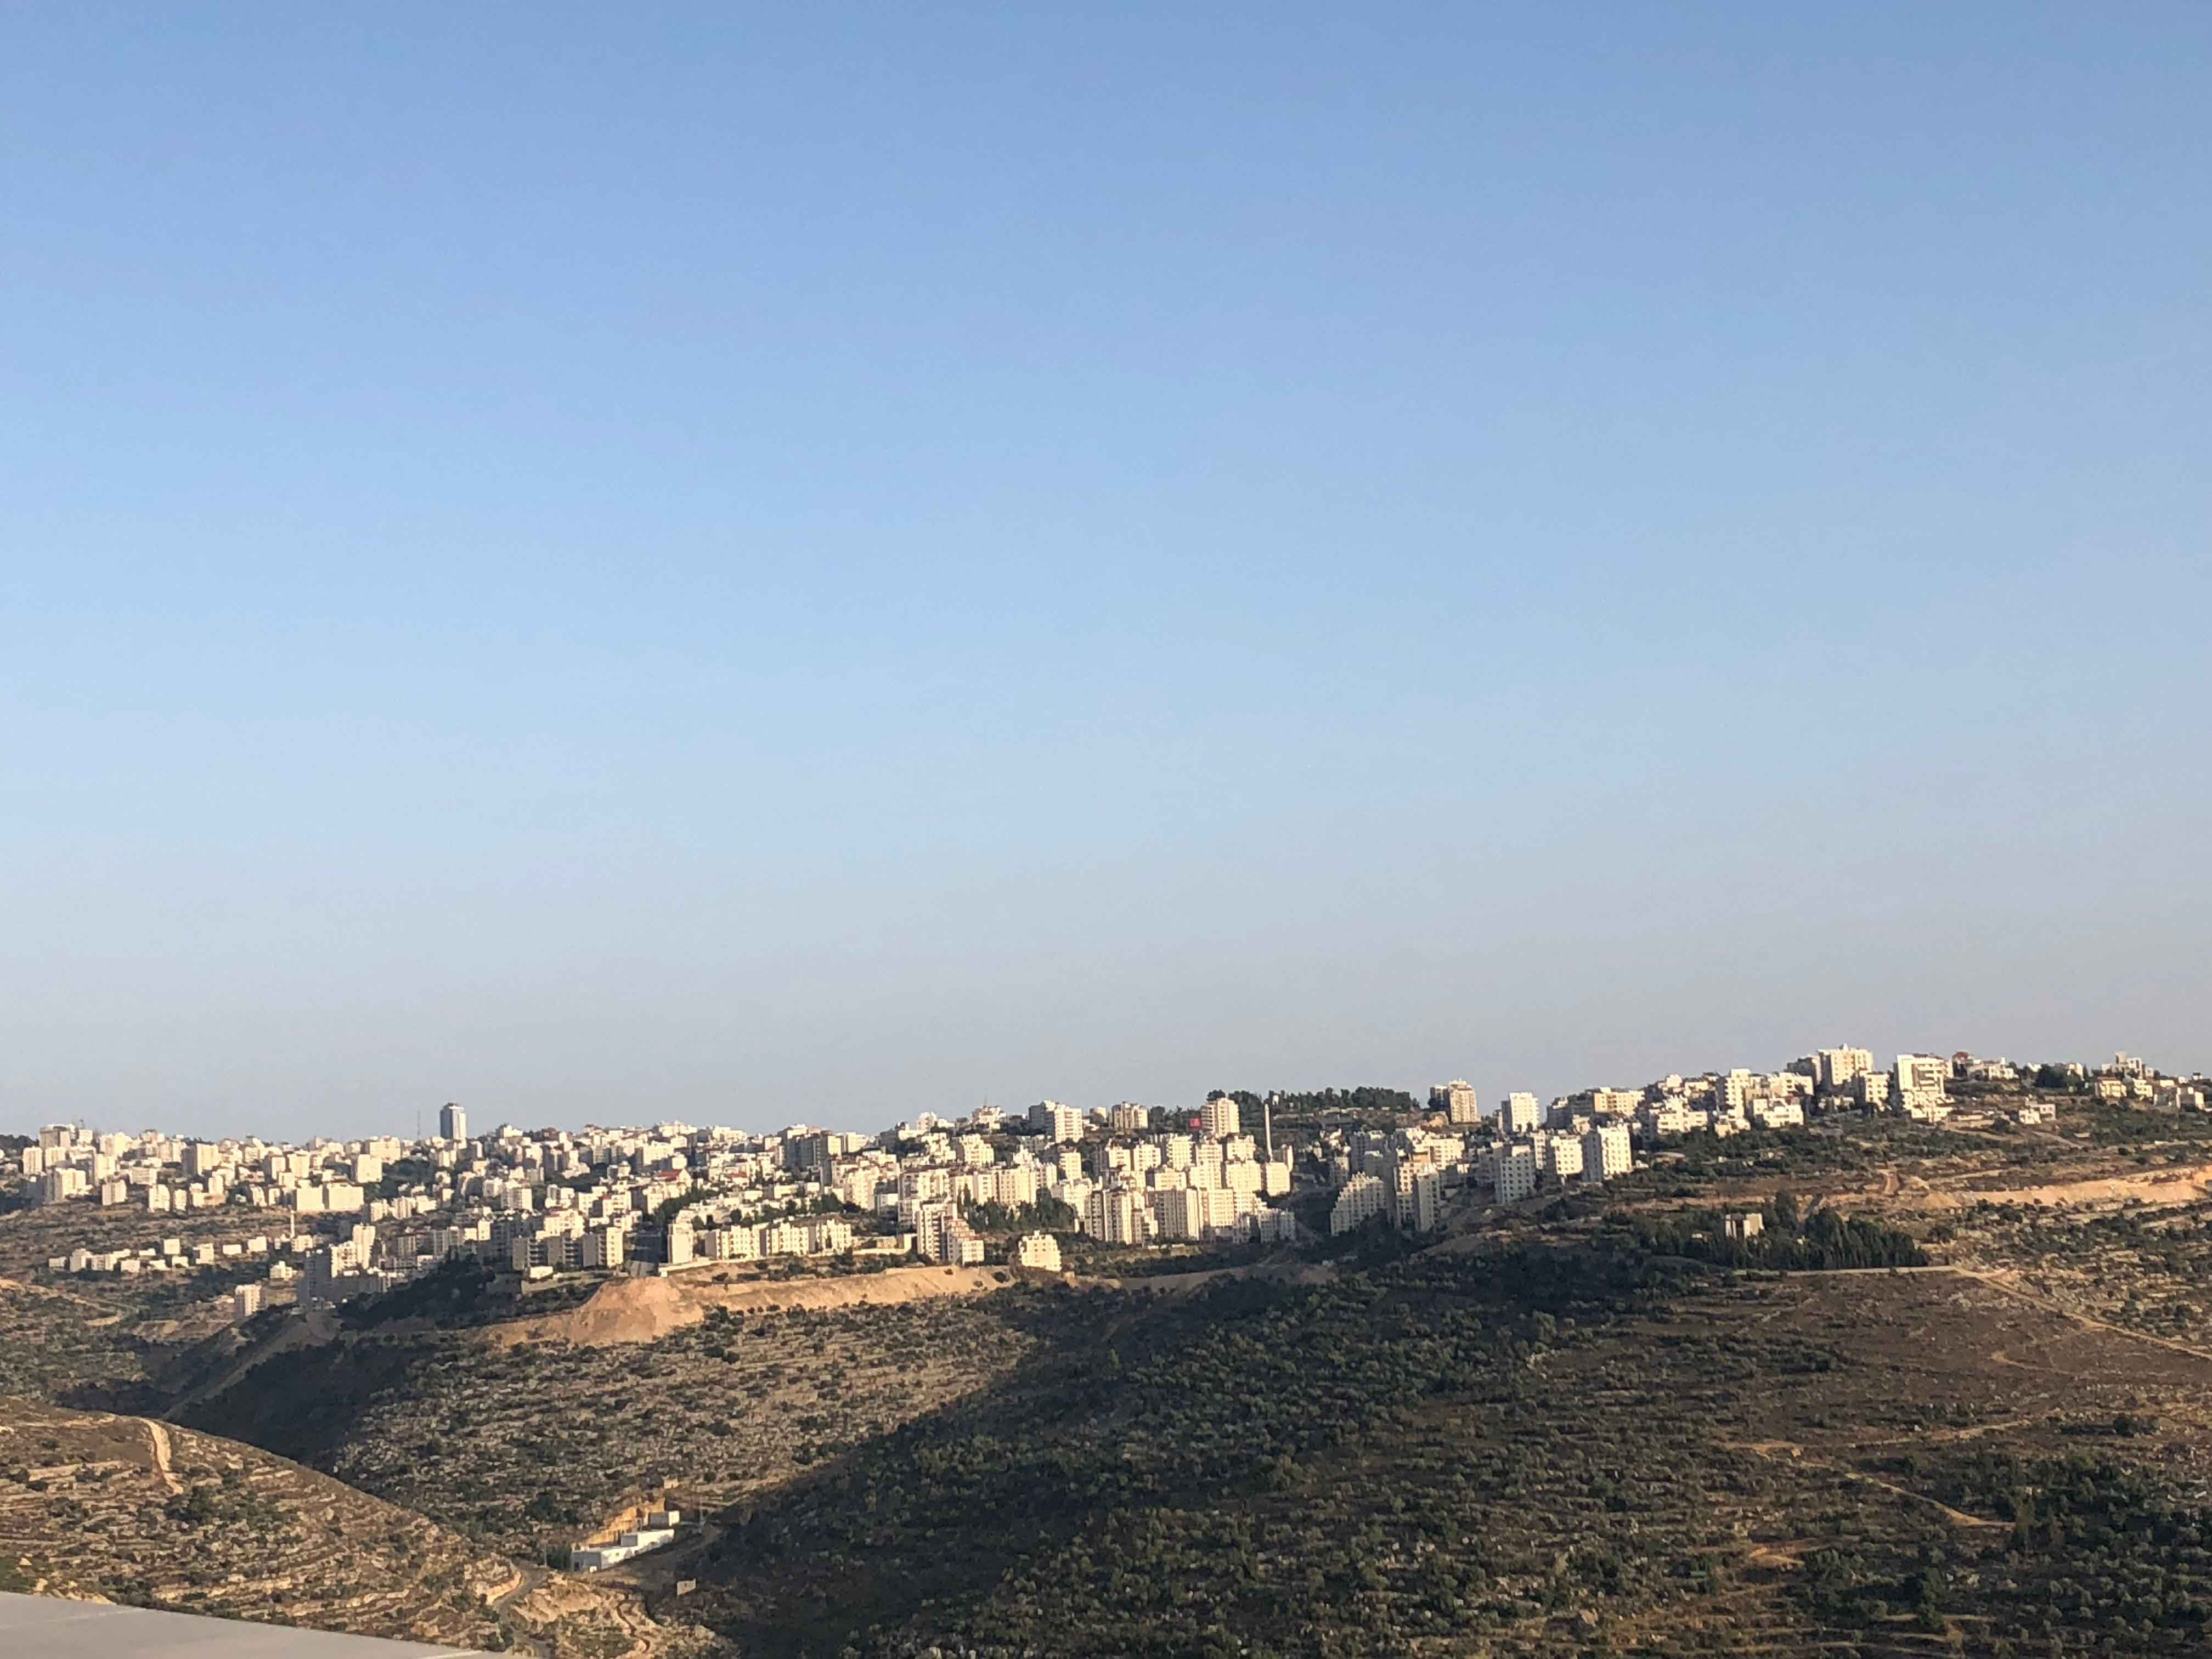 A view of Ramallah city in the West Bank. (Ruba Zeidan)